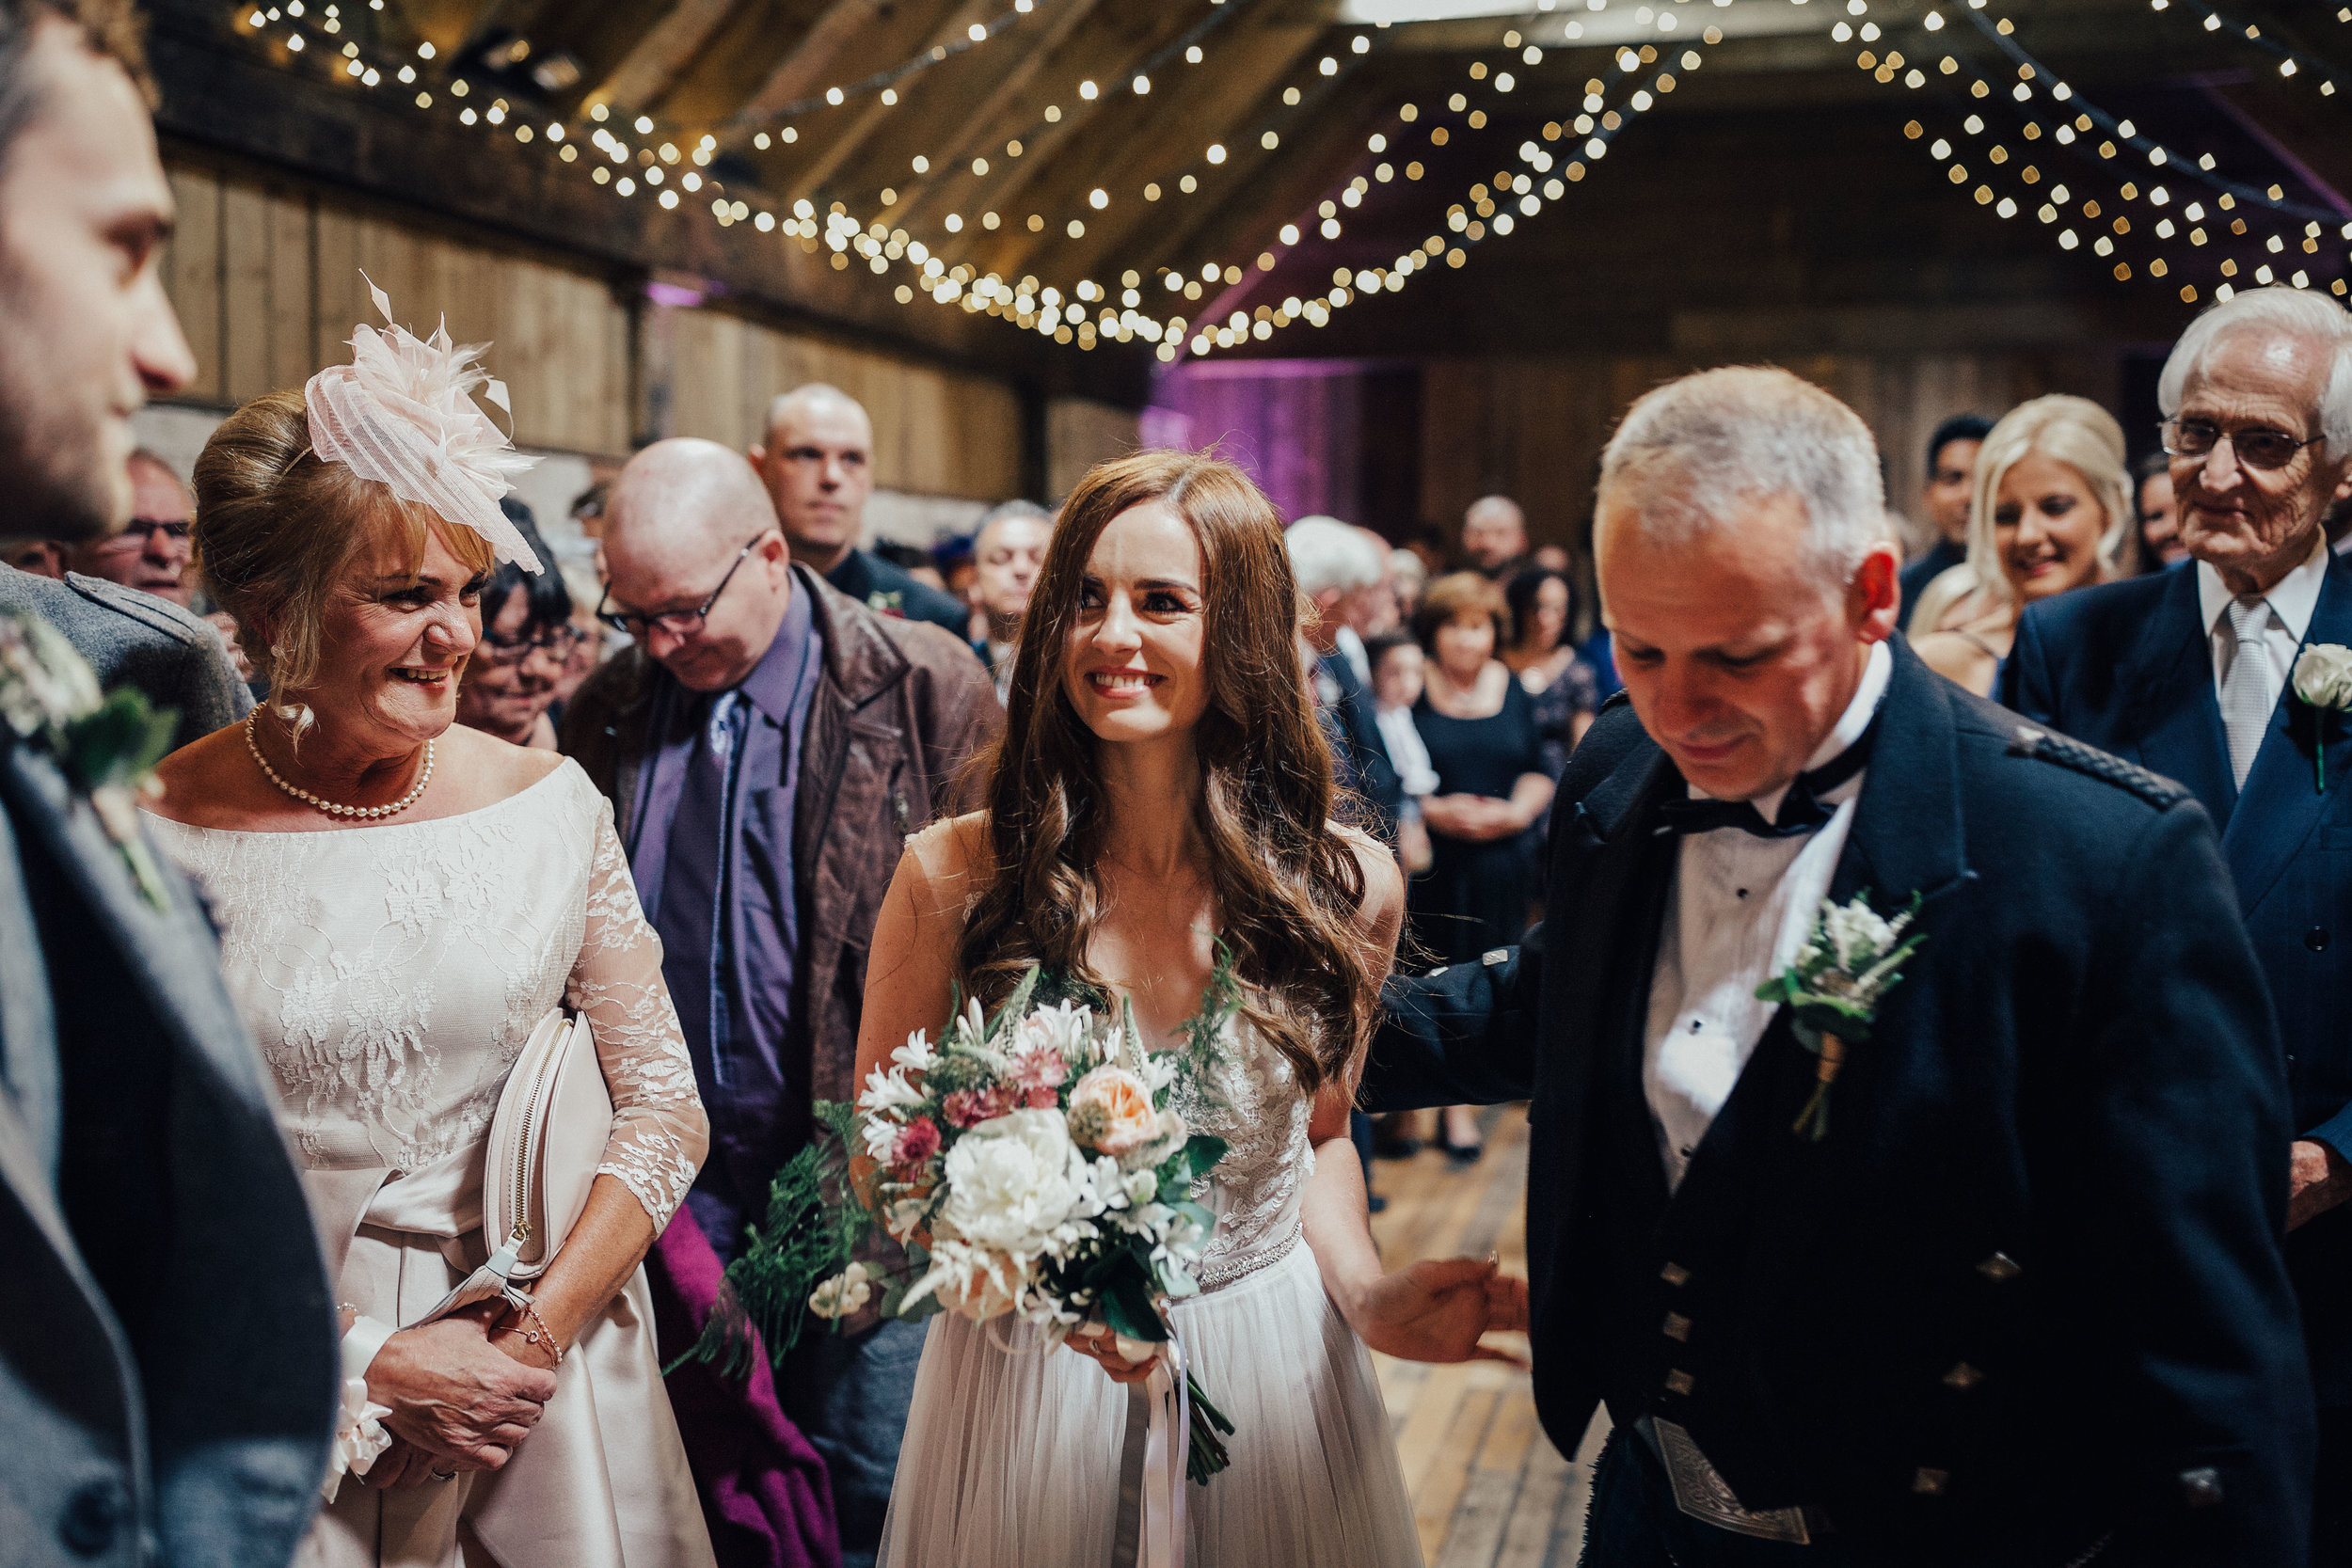 BYRE_AT_INCHYRA_WEDDING_PHOTOGRAPHER_PJ_PHILLIPS_PHOTOGRAPHY_KAYLEIGH_ANDREW_77.jpg